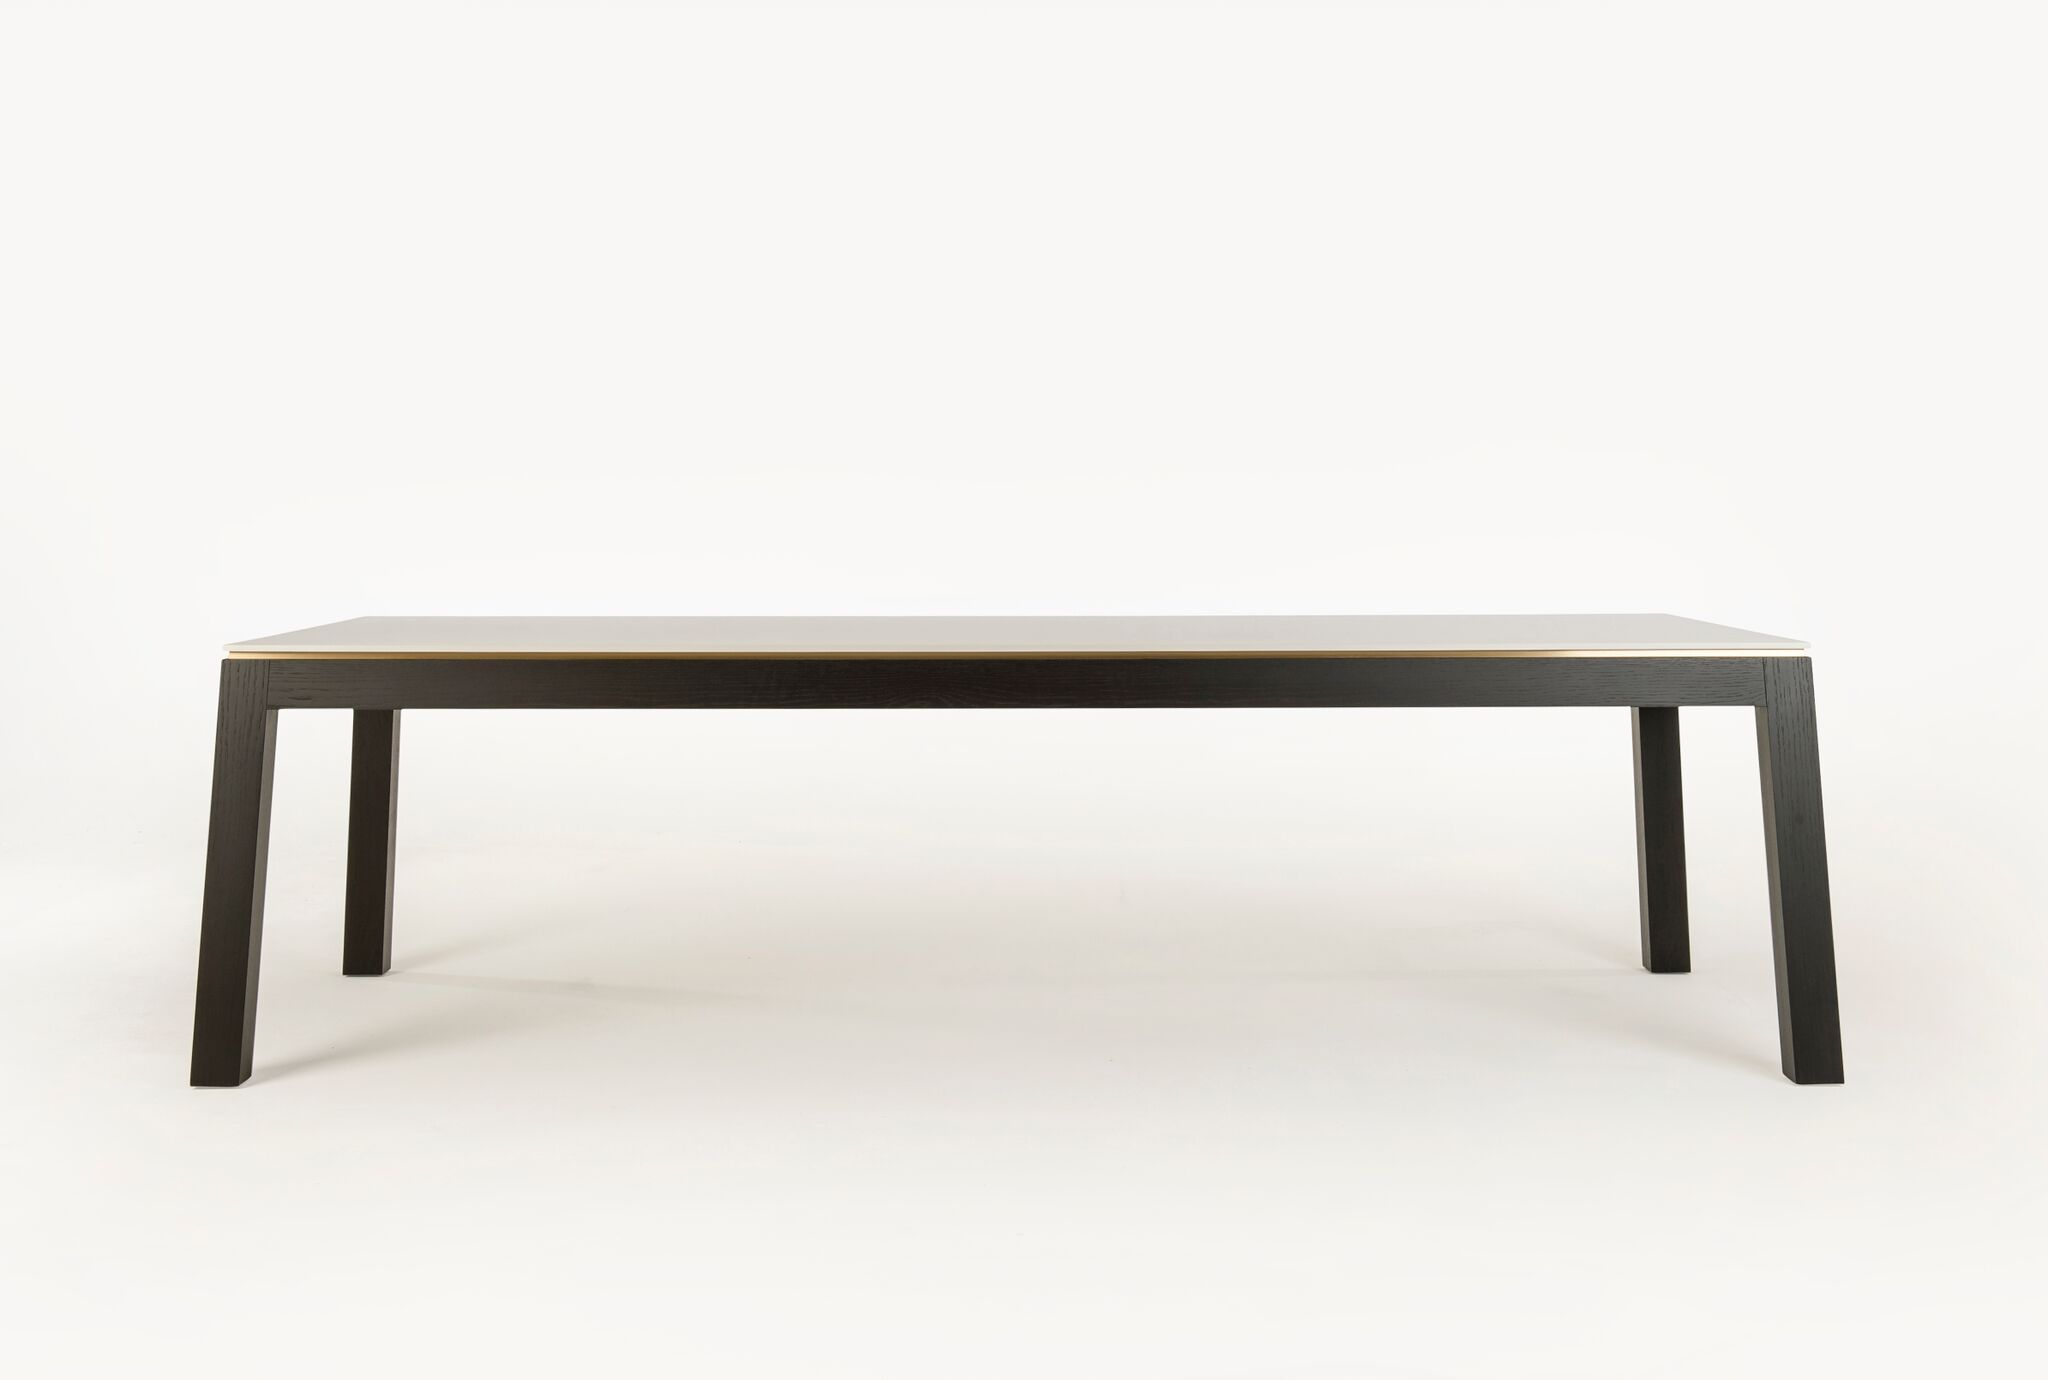 Gallery Of The Mila Table By Fraco Crea Local Australian Furniture Design Melbourne, Vic Image 1